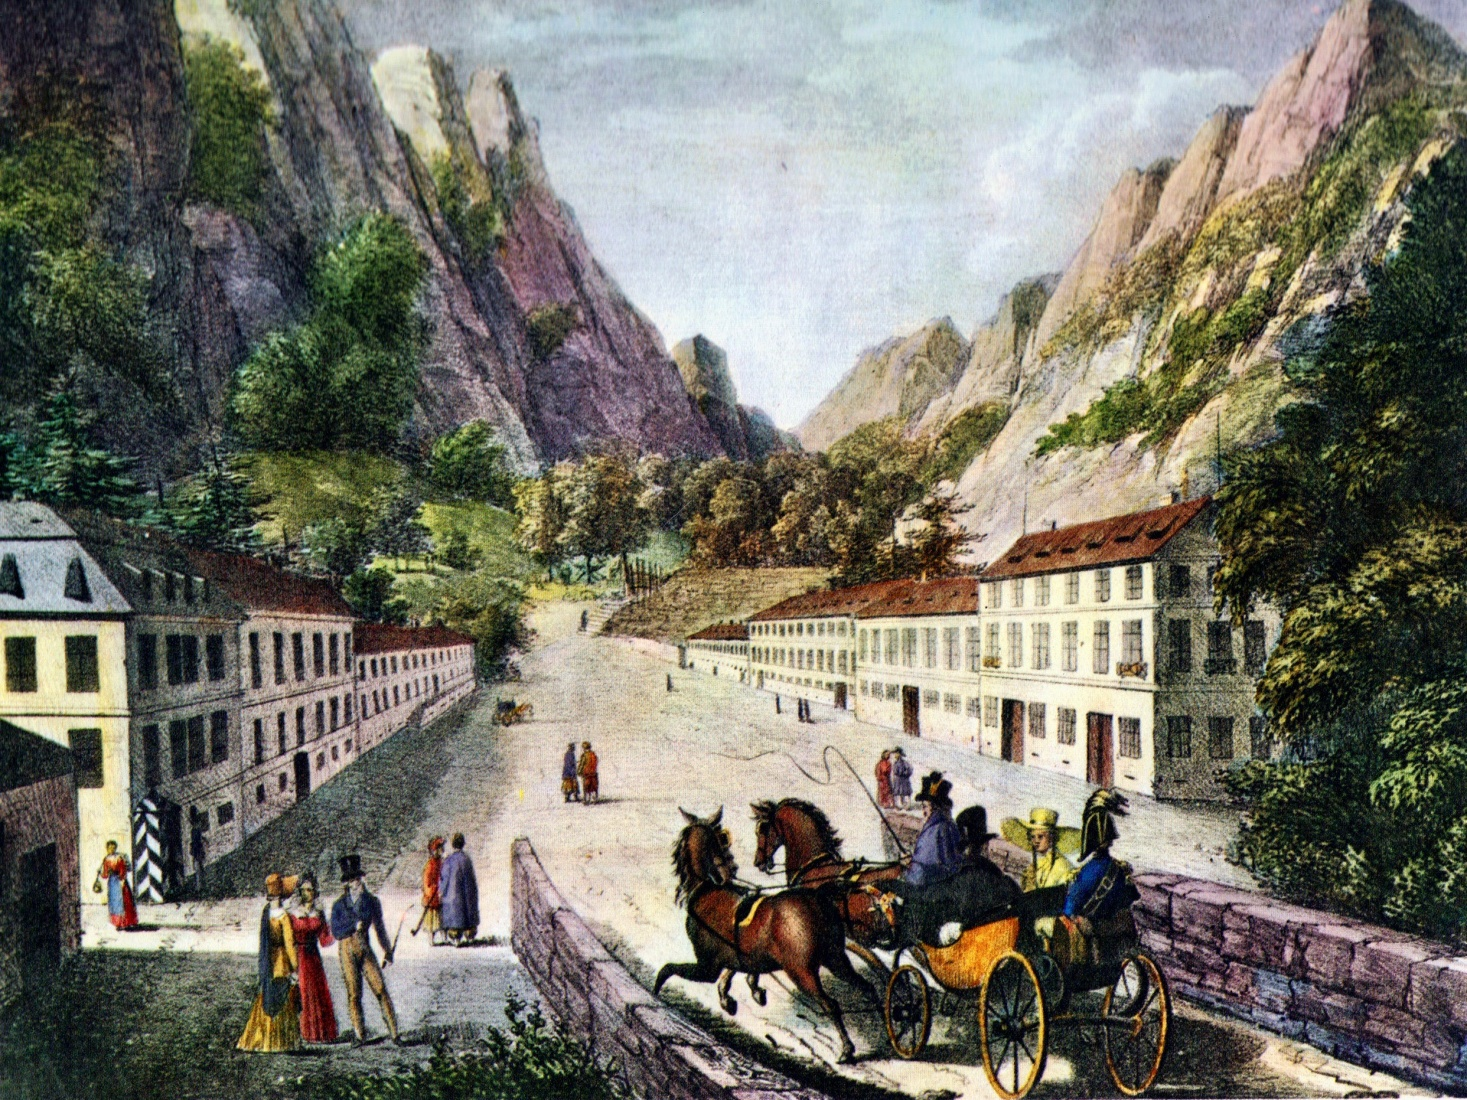 Deutschland und die Welt, by Adolph Kunike, a painting of the Baths of Hercules in Brașov, Romania, painted in 1824.